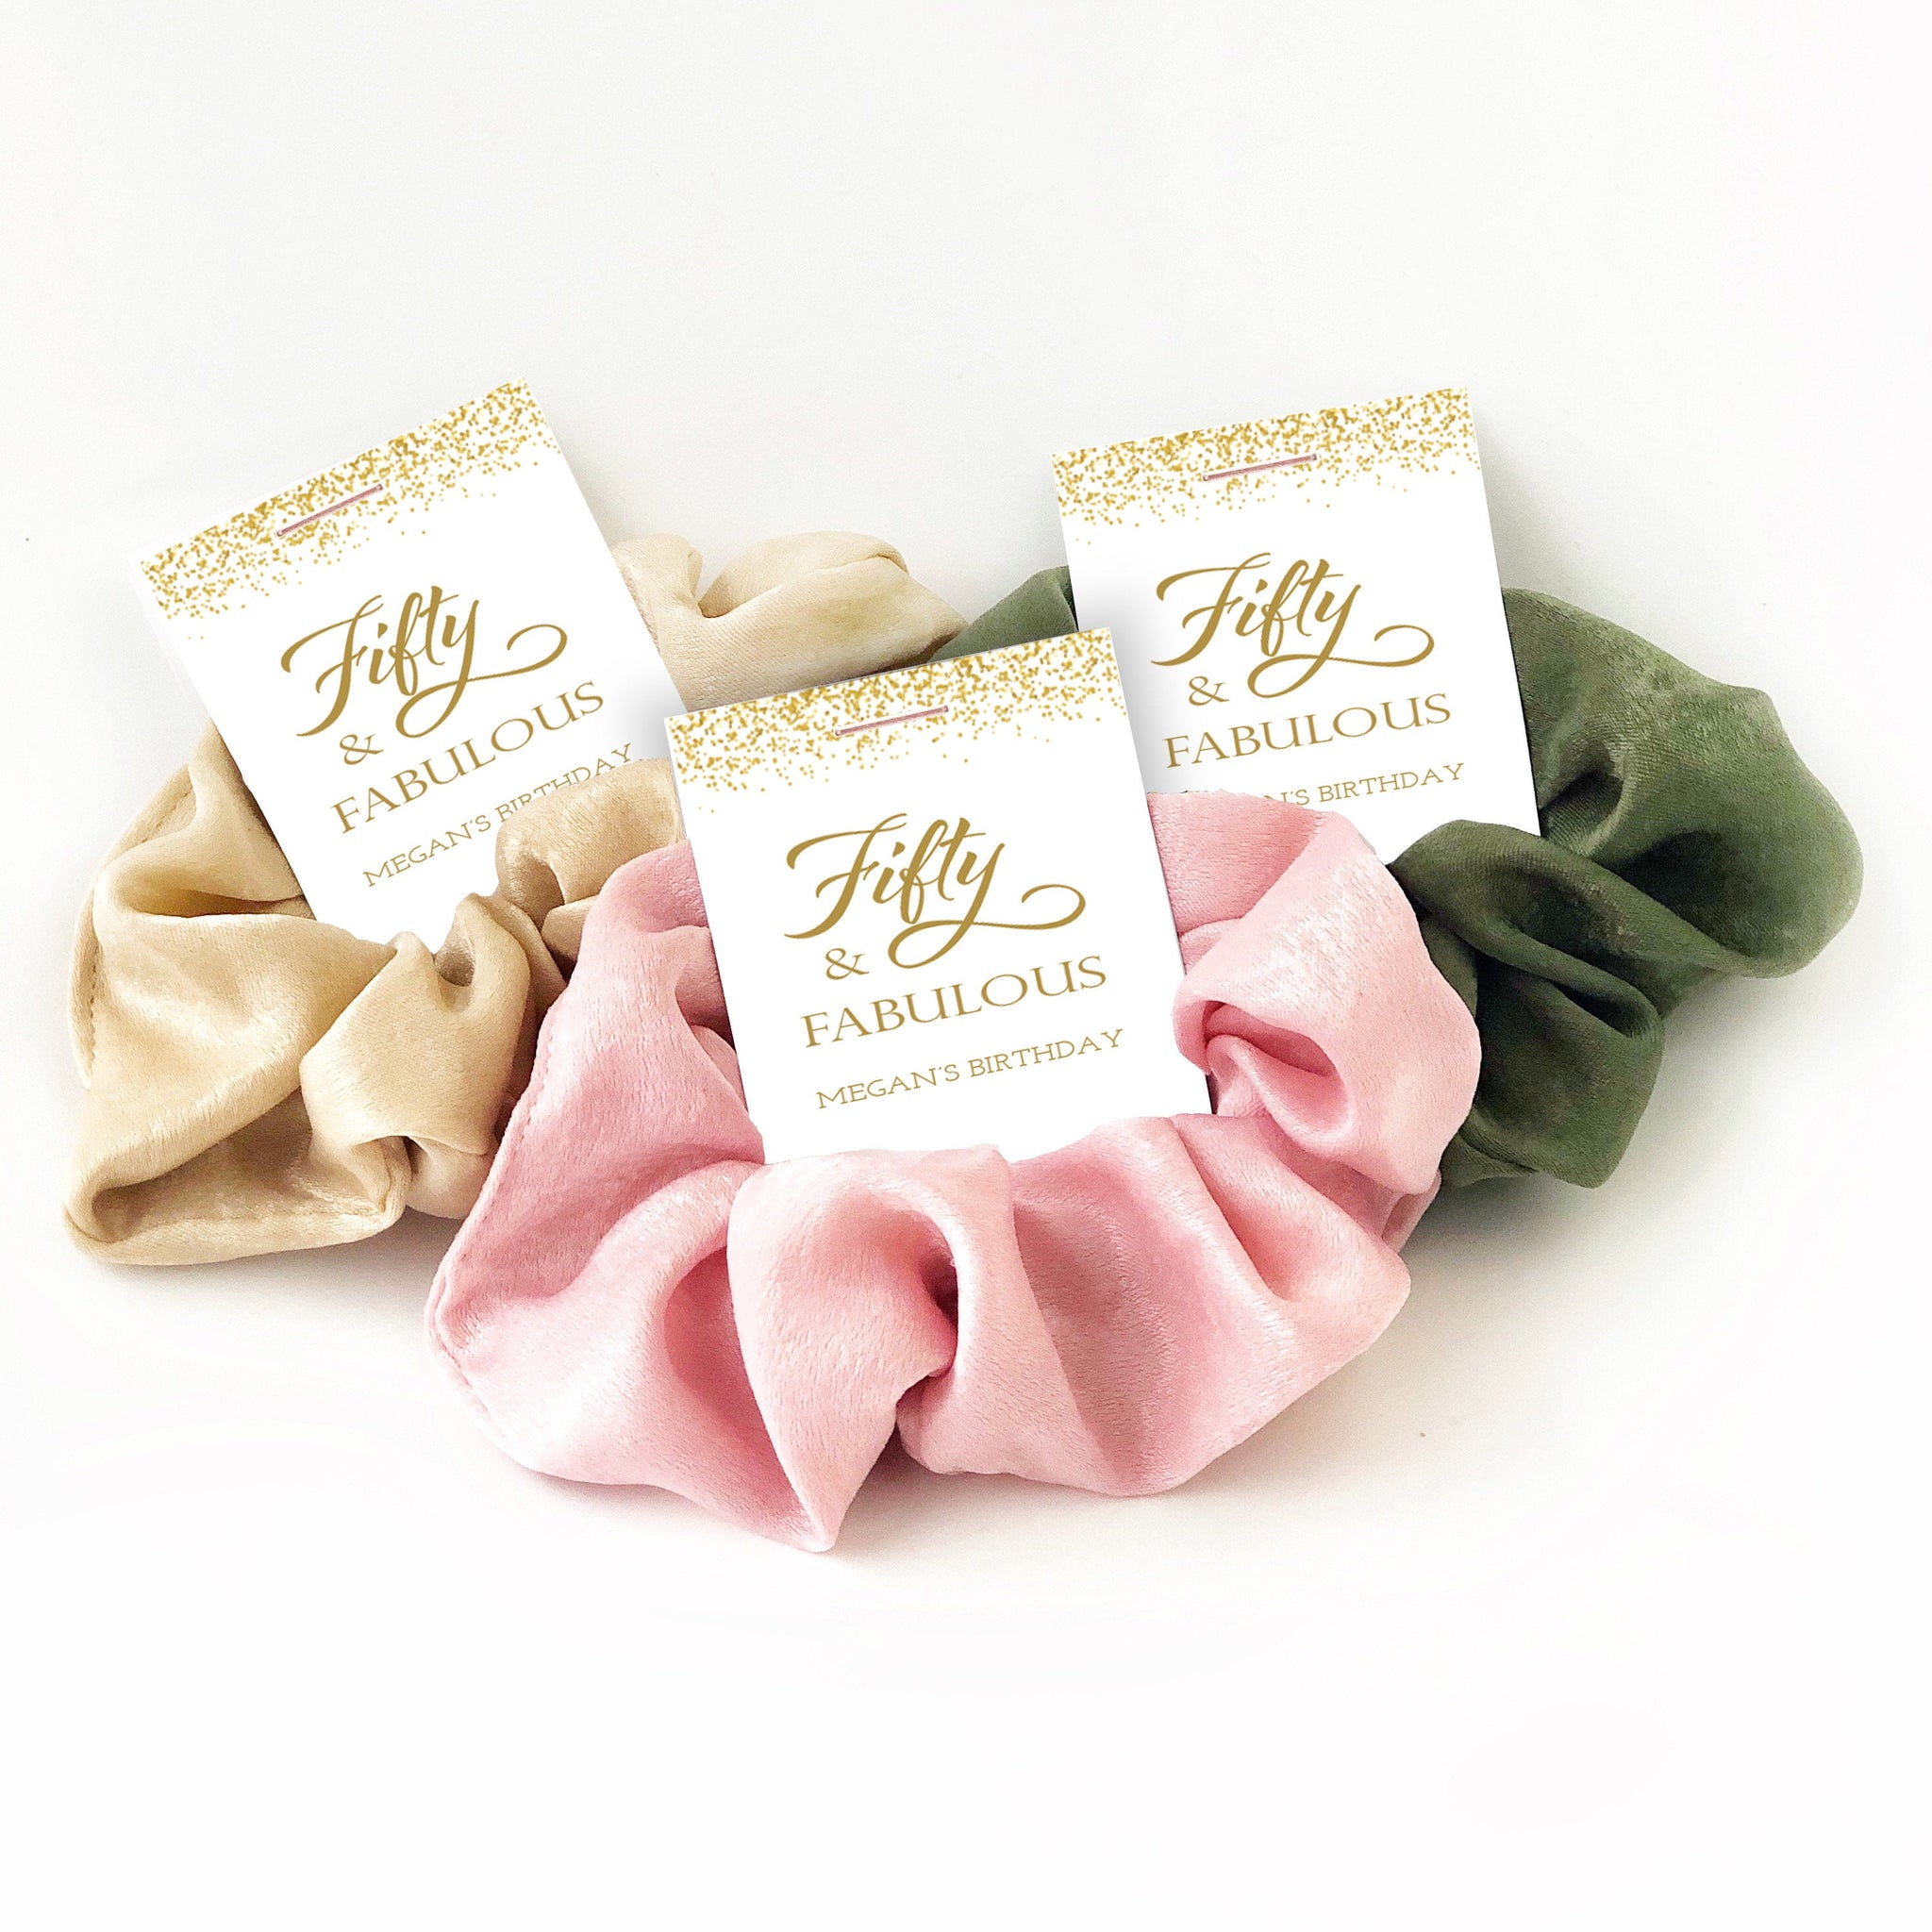 50 and Fabulous, 50th Birthday Party Favors for Women, Hair Scrunchies - @PlumPolkaDot